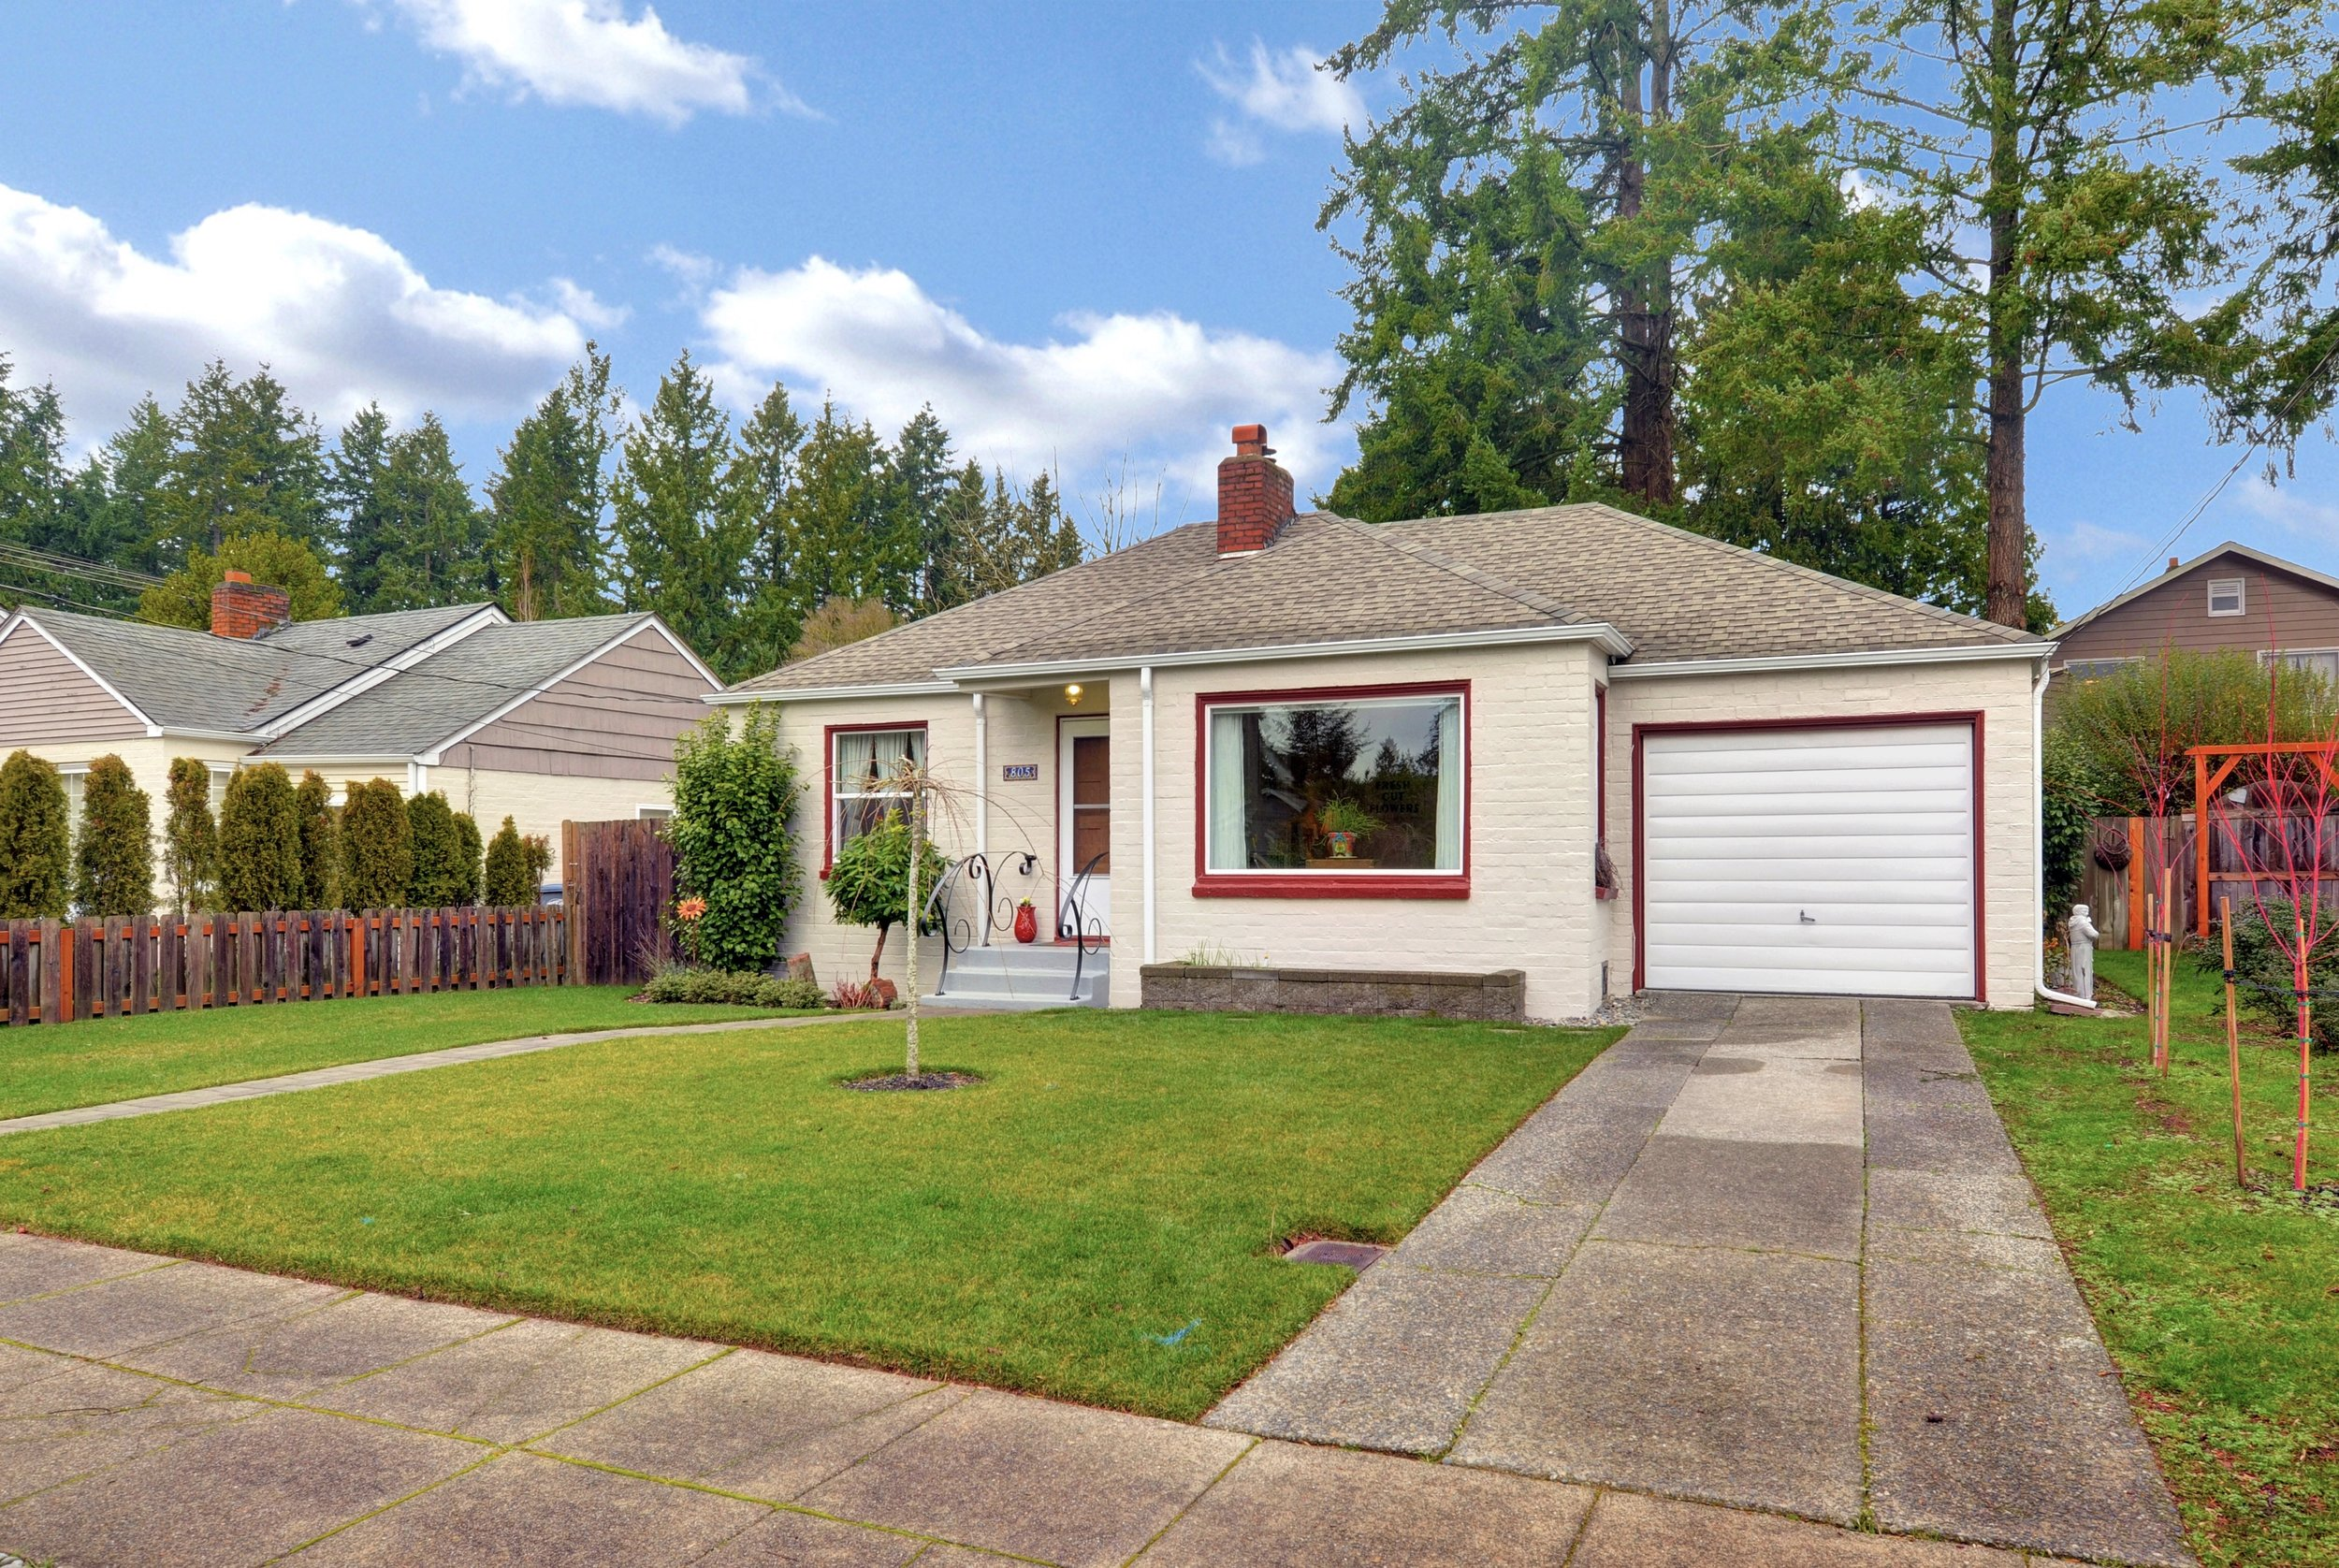 Fresh exterior paint, new sod, and new paving stone pathways make for curb appeal.